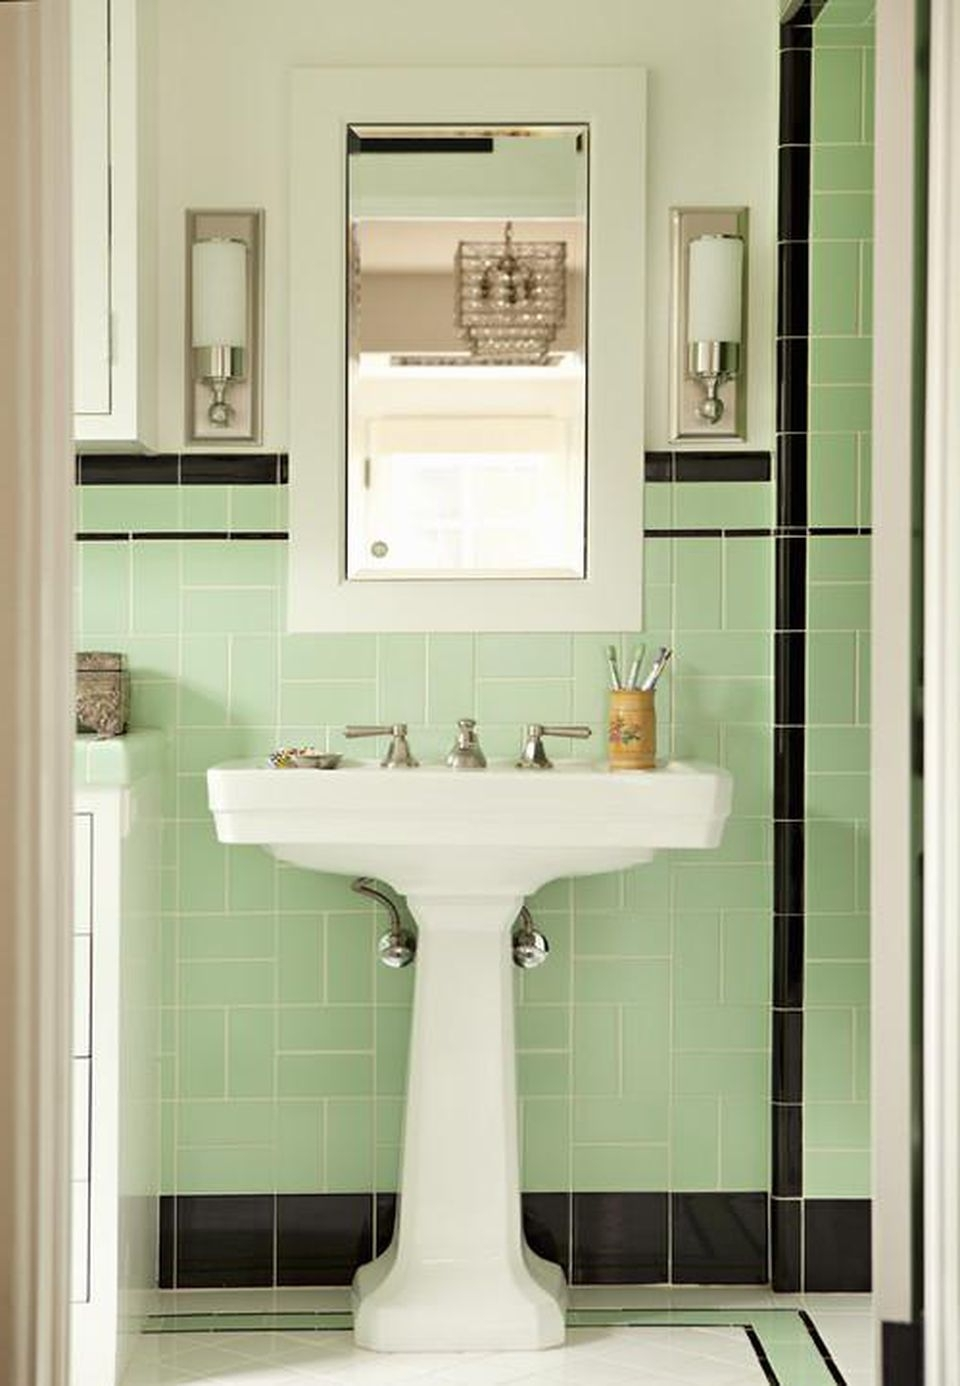 8 Ways To Spruce Up An Older Bathroom (Without Remodeling) 50S Bathroom Remodel